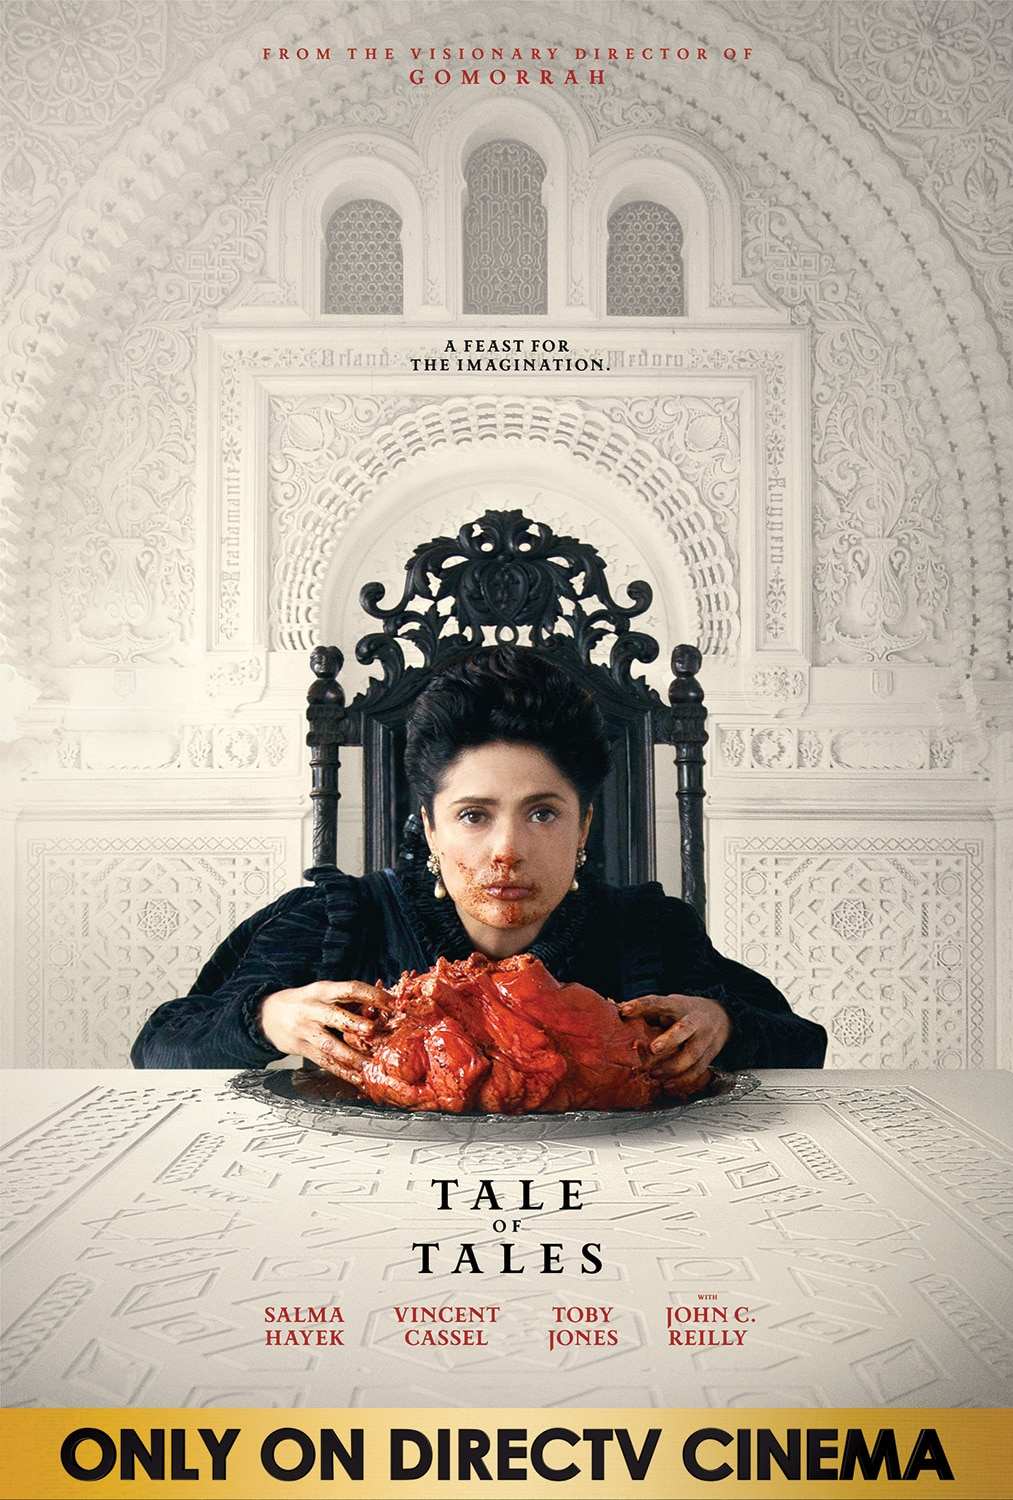 tale of tales.jpg?zoom=1 - The Old Man Tells a Tale of Tales in a New Clip